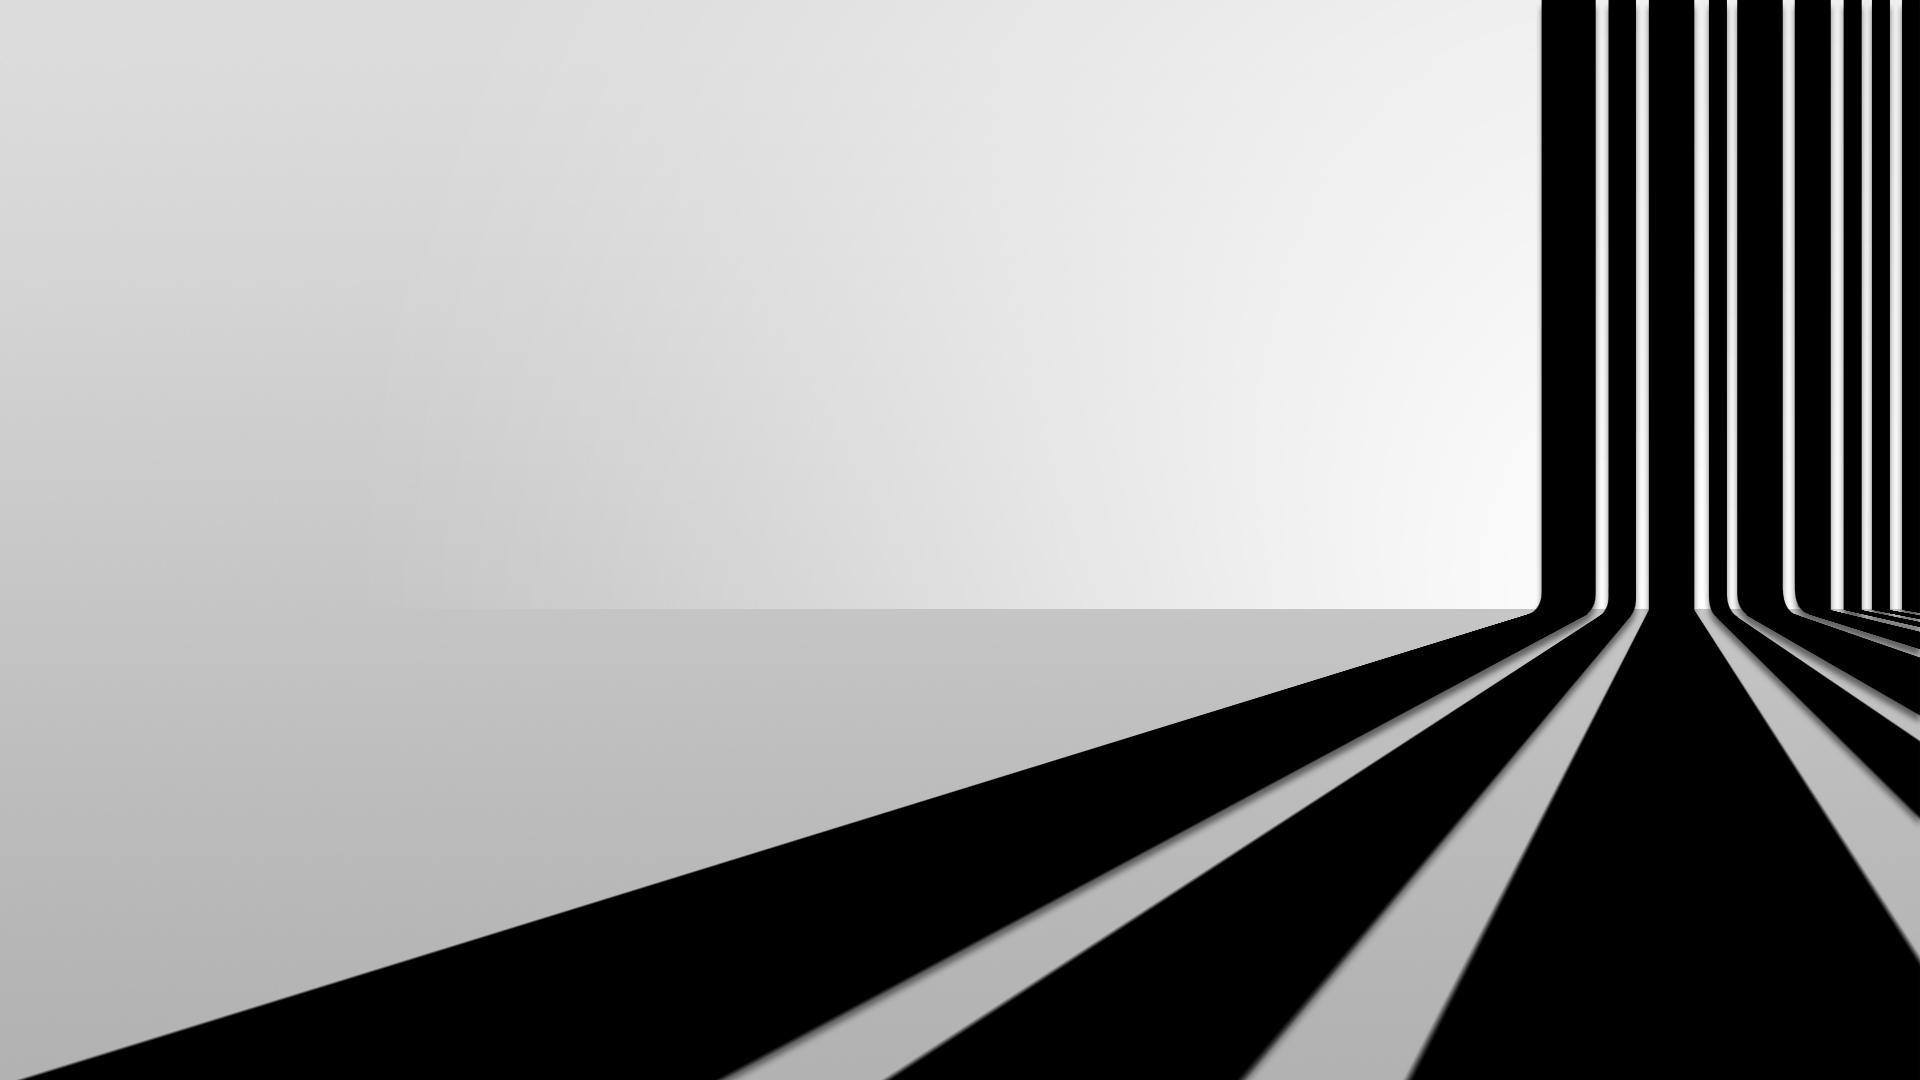 Fond d 39 ecran lignes noires wallpaper - Black and white hd wallpapers black background ...